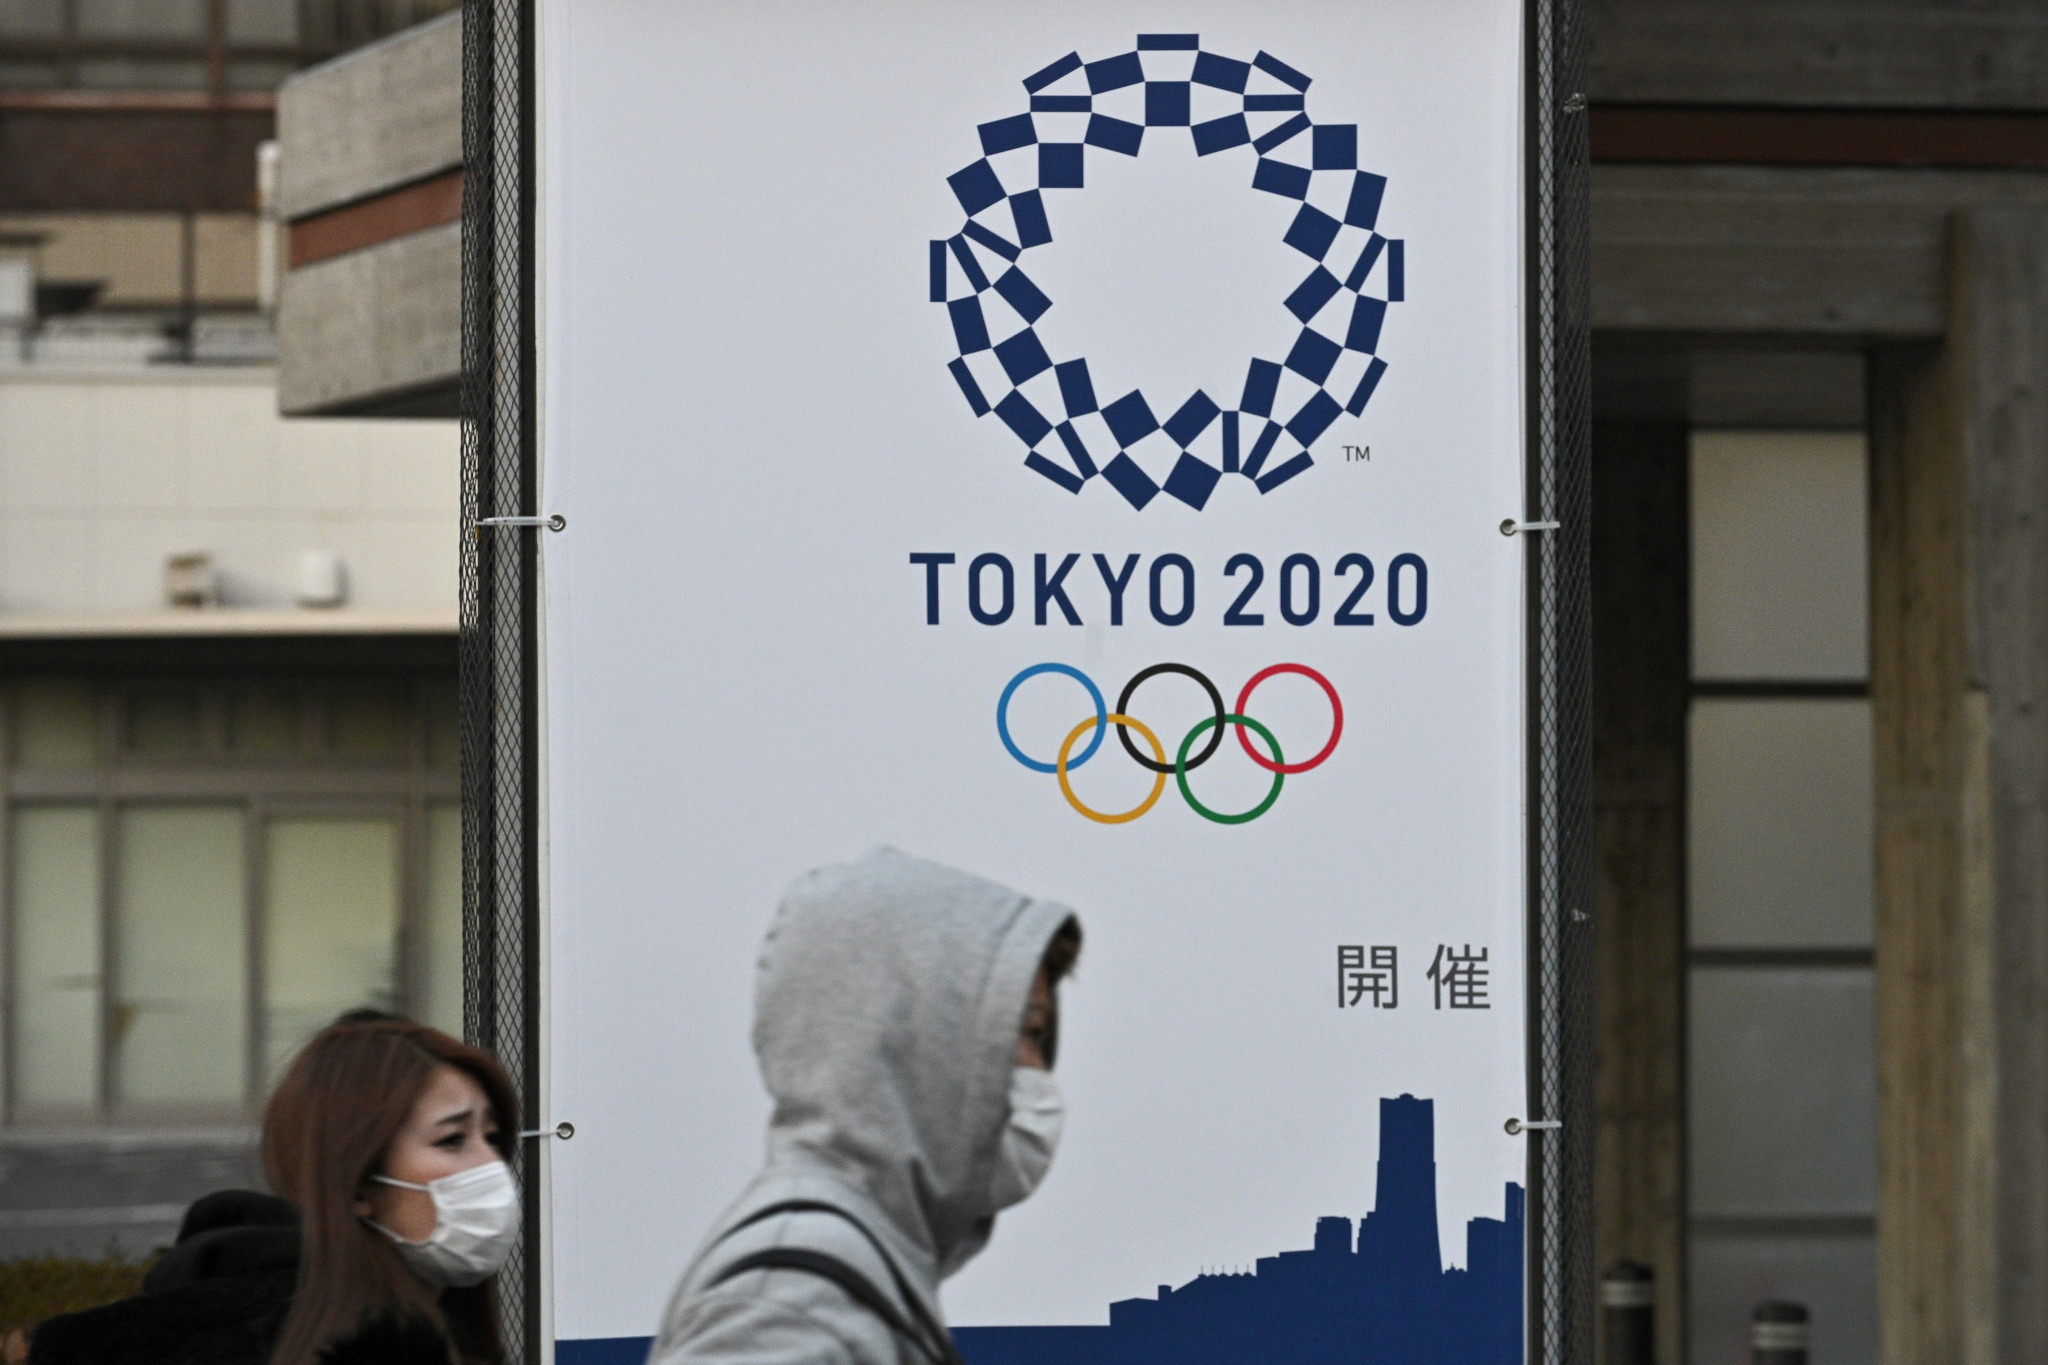 The coronavirus pandemic has wreaked havoc on the qualification process for Tokyo 2020 ©Getty Images